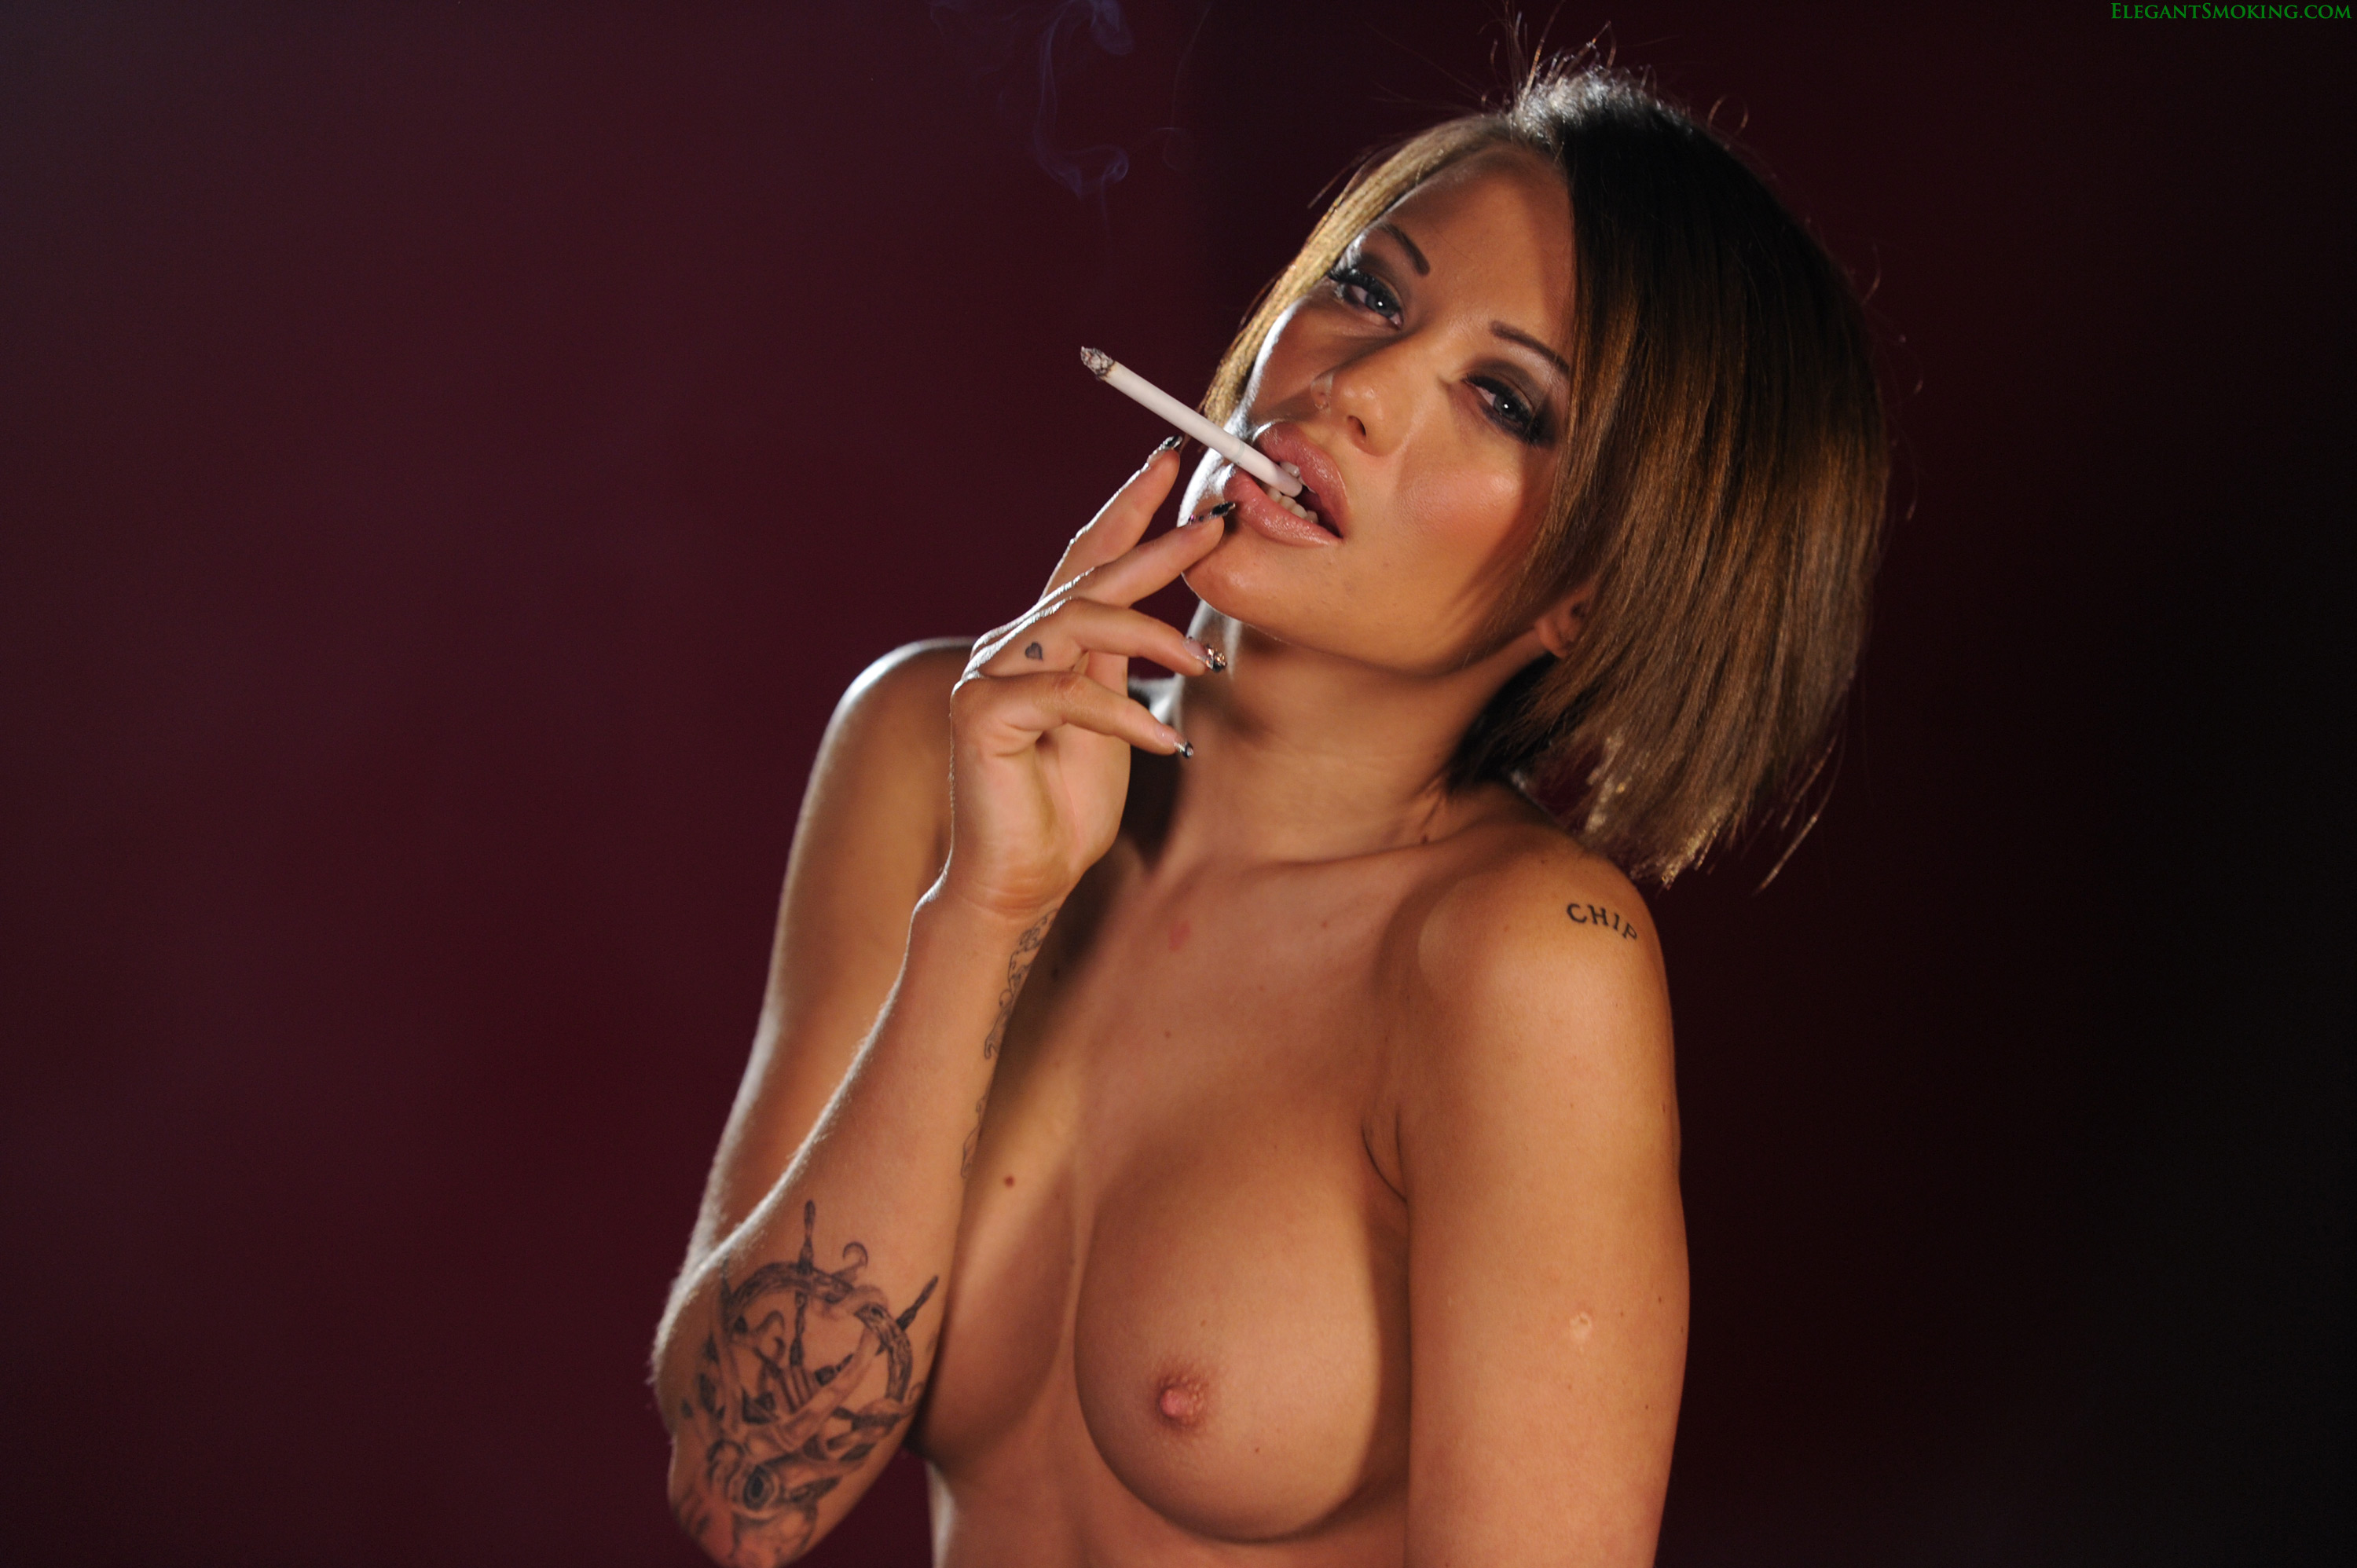 Big boob woman smoking